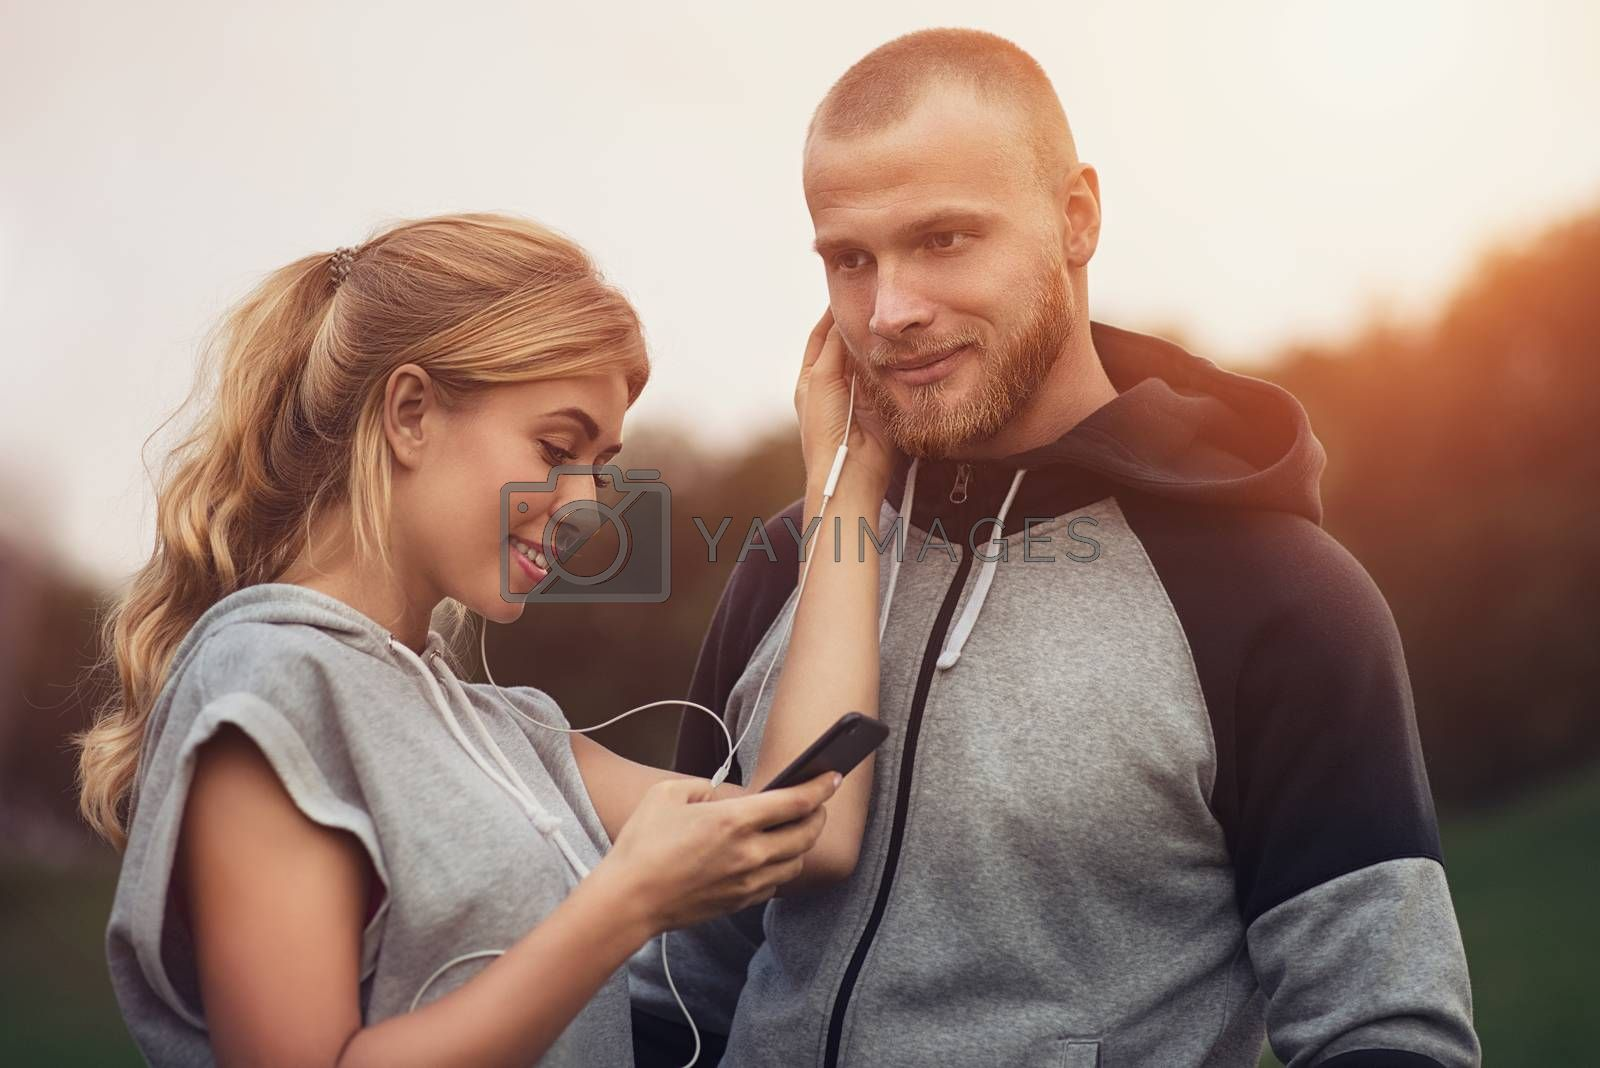 Caucasian sportive couple dating on after training, listening to music, having fun together. Sports and Outdoor Activities, Technology and People Relations Concept